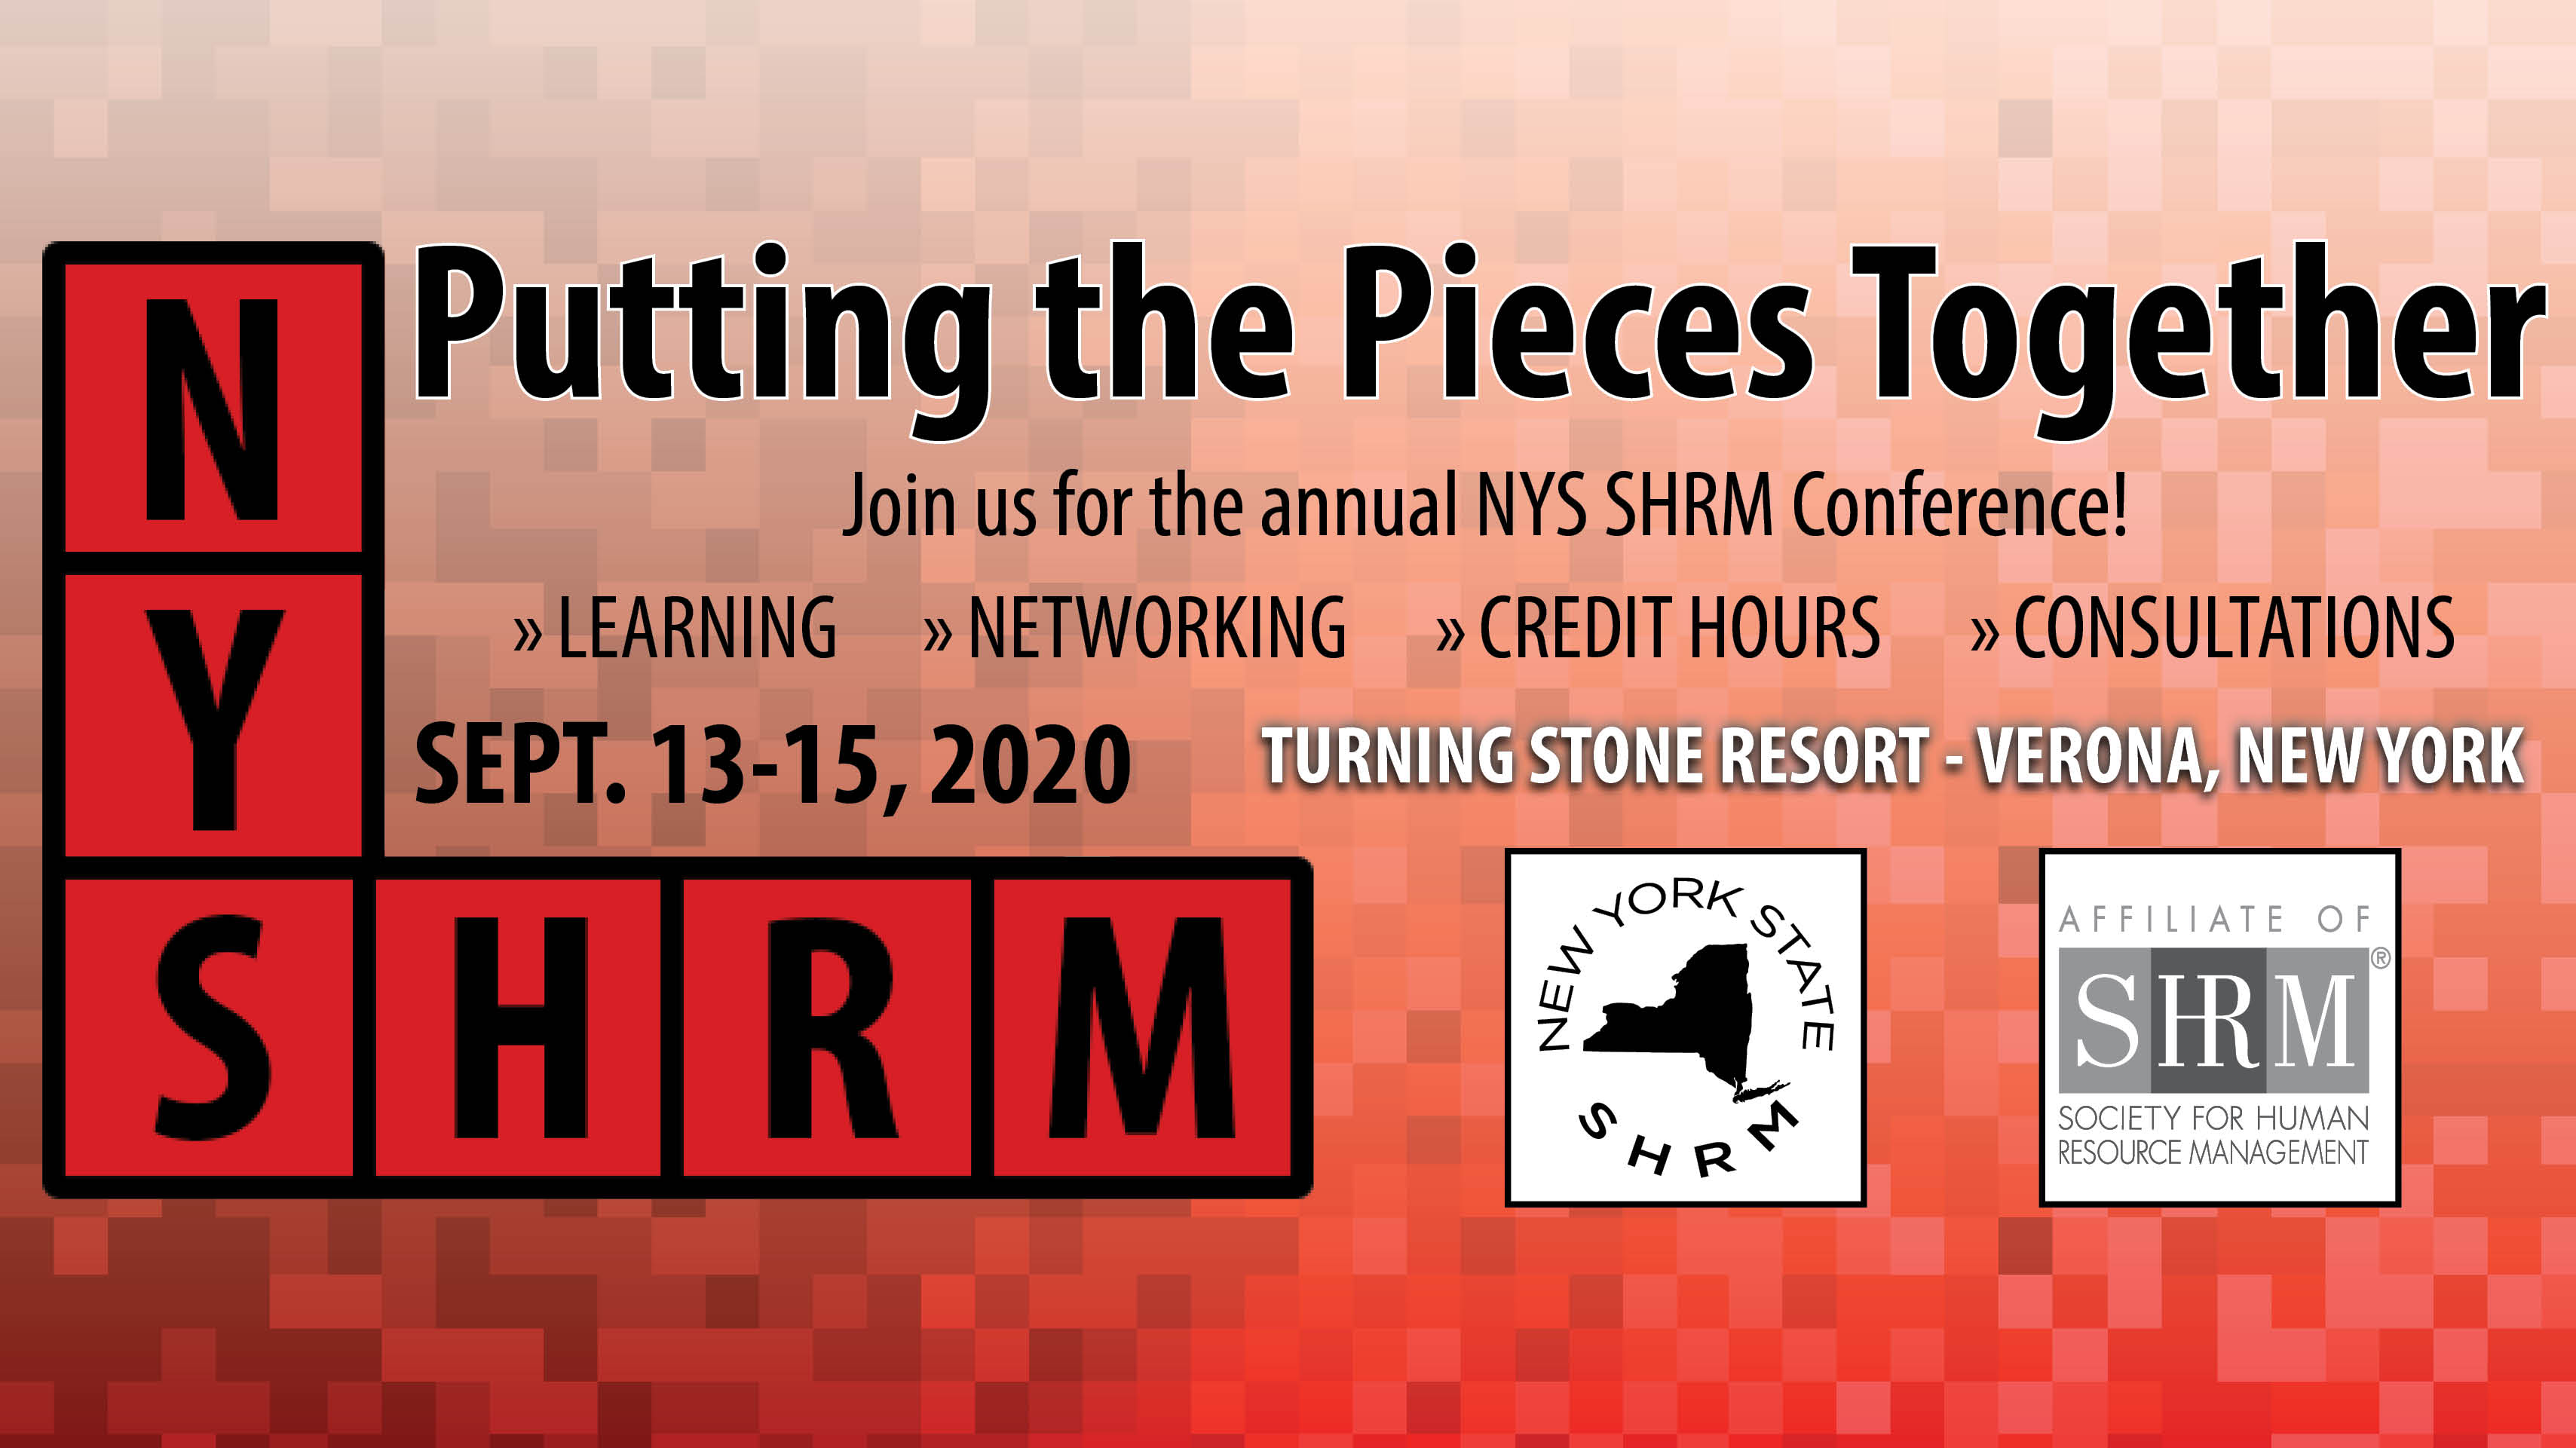 2020 NYS SHRM Conference